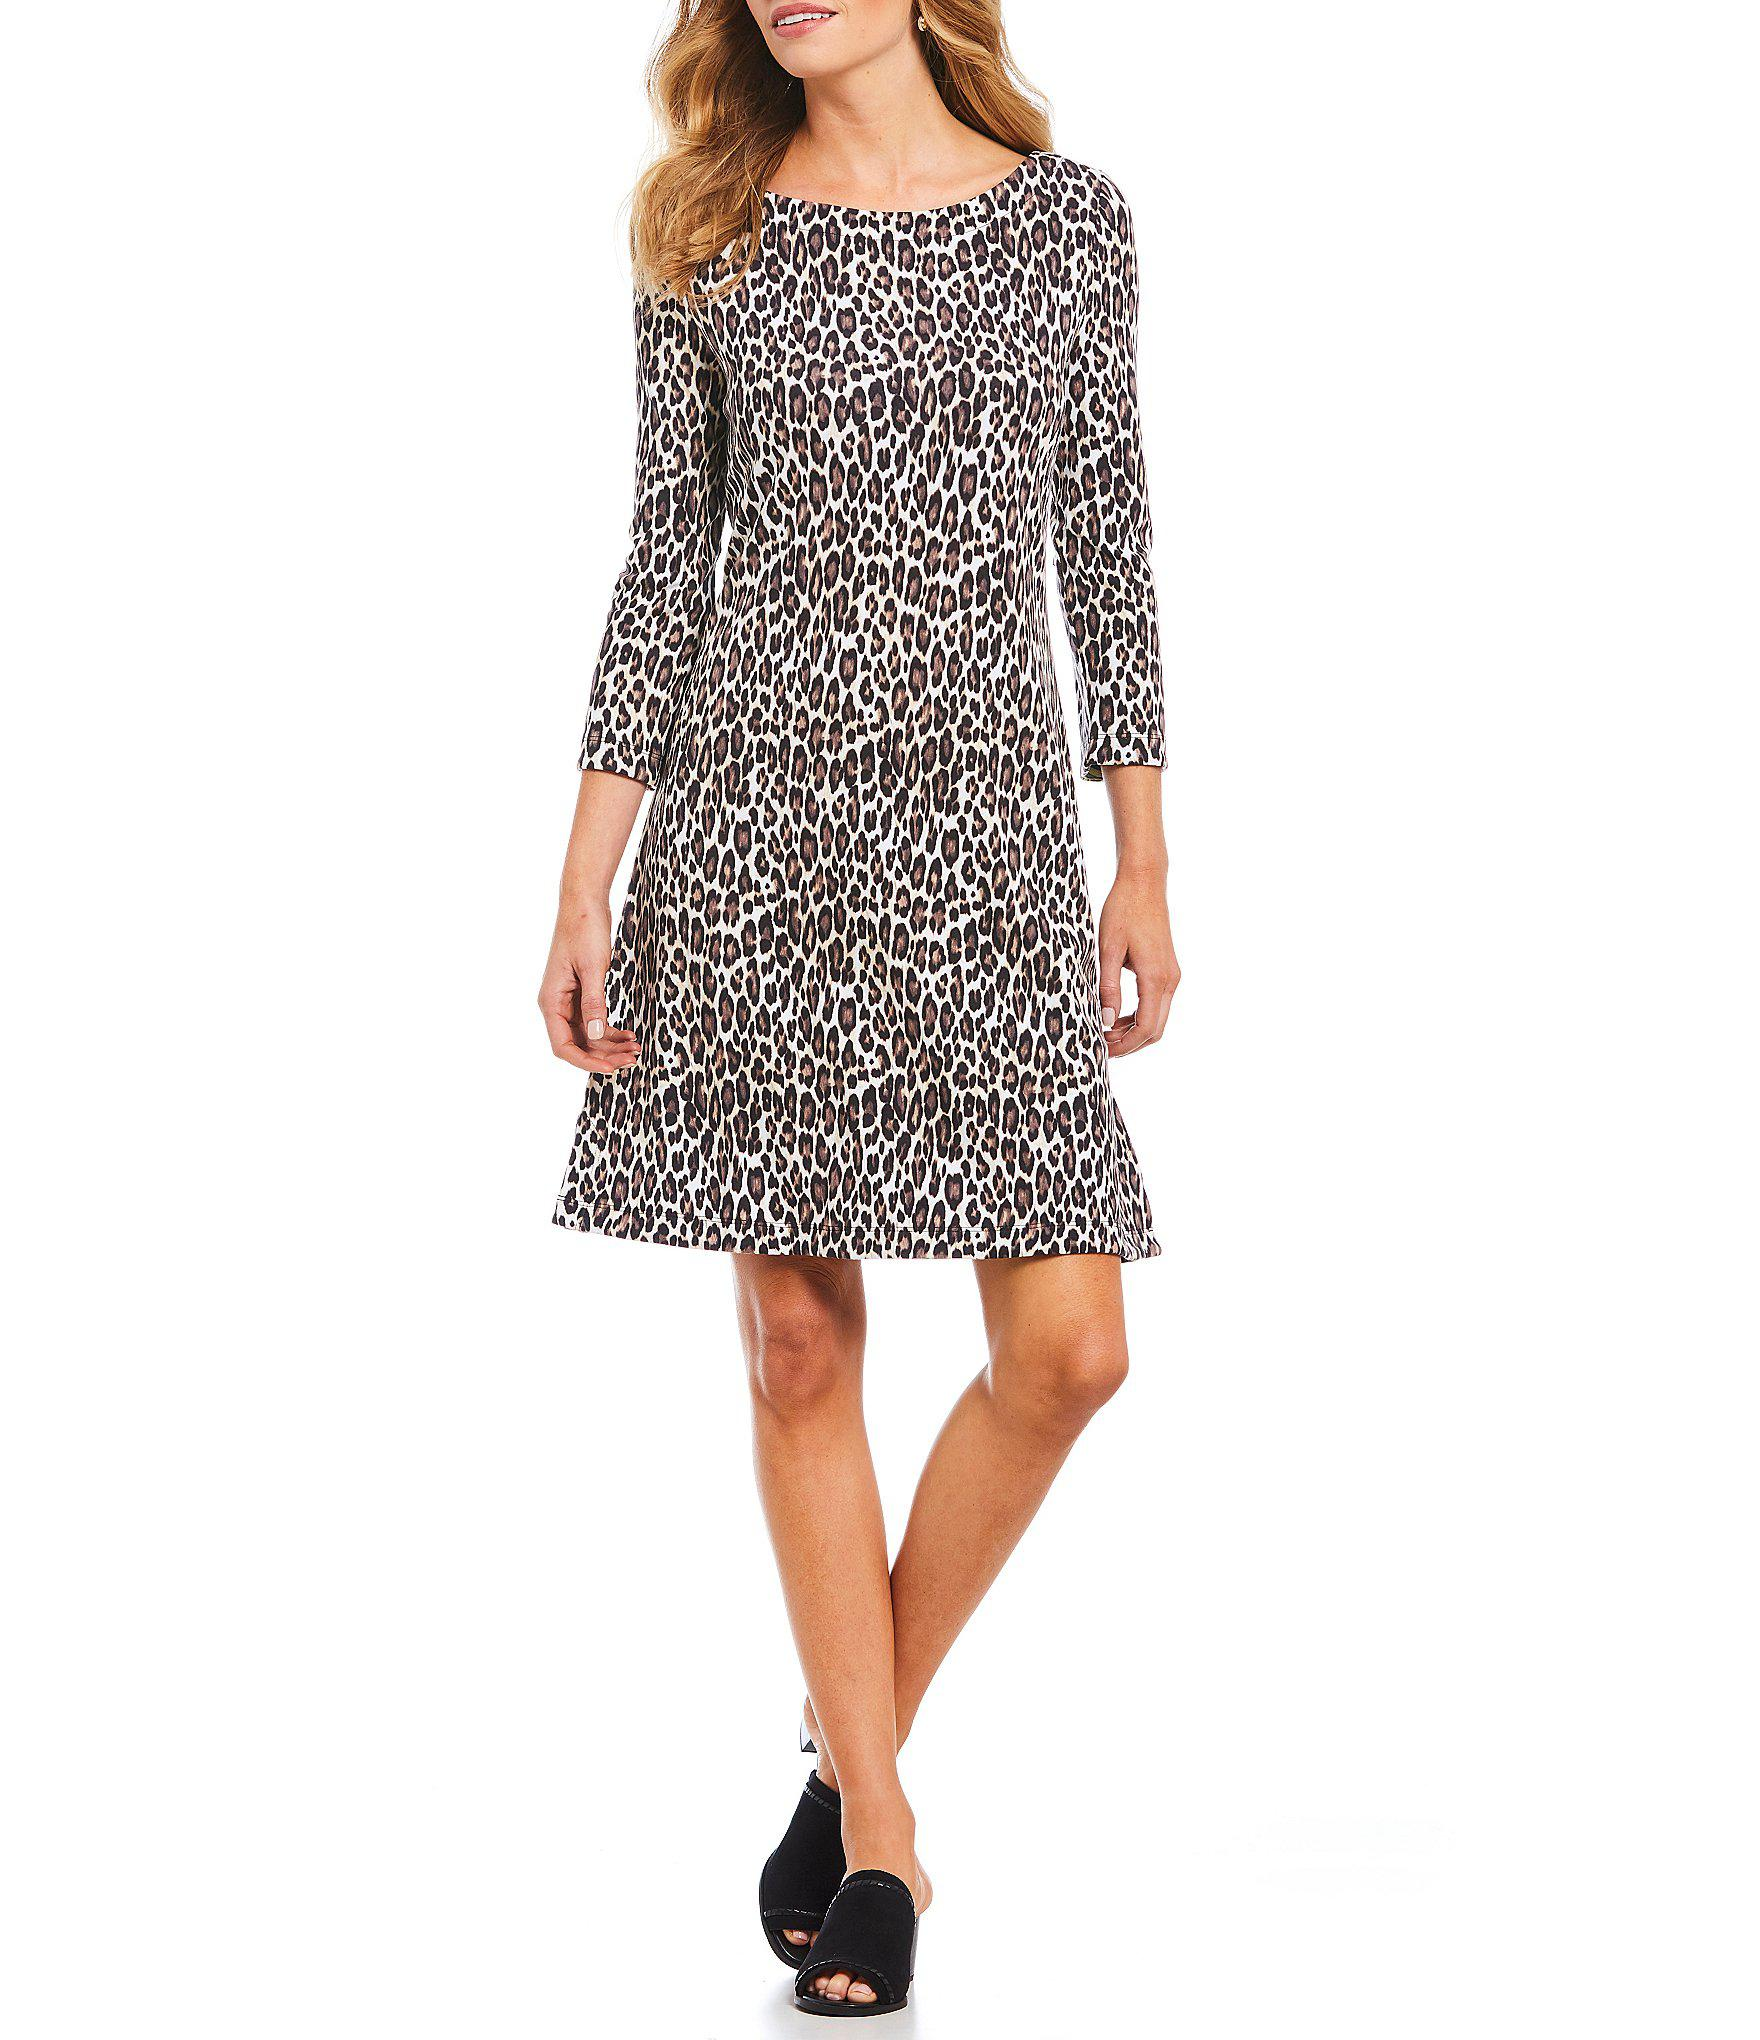 2bfb0af041 Lyst - Tommy Bahama Cat s Meow Animal Print 3 4 Sleeve A-line Dress ...